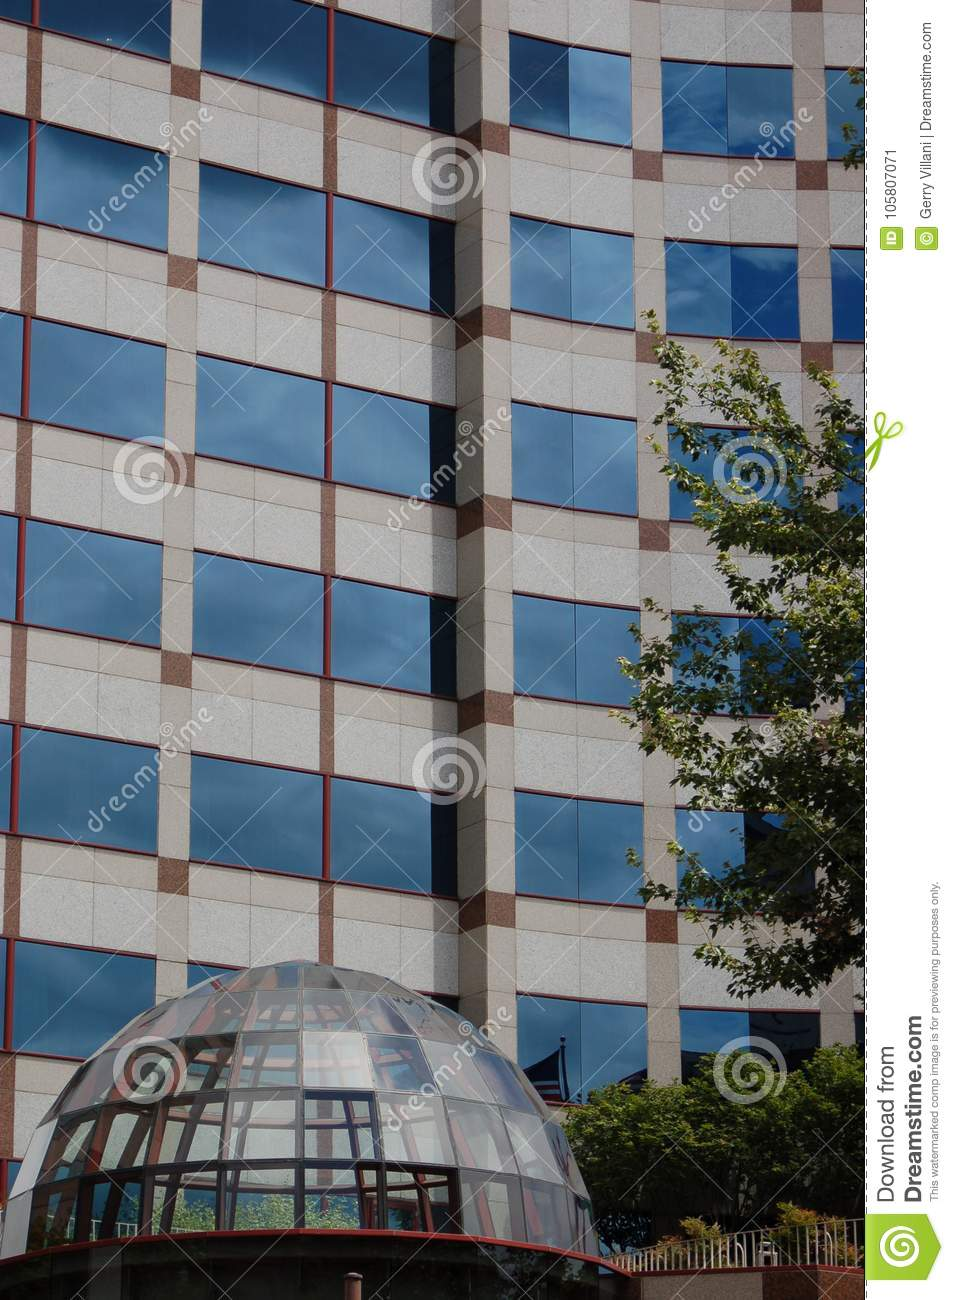 Office Building with Glass Dome Entrance, Portland, Oregon